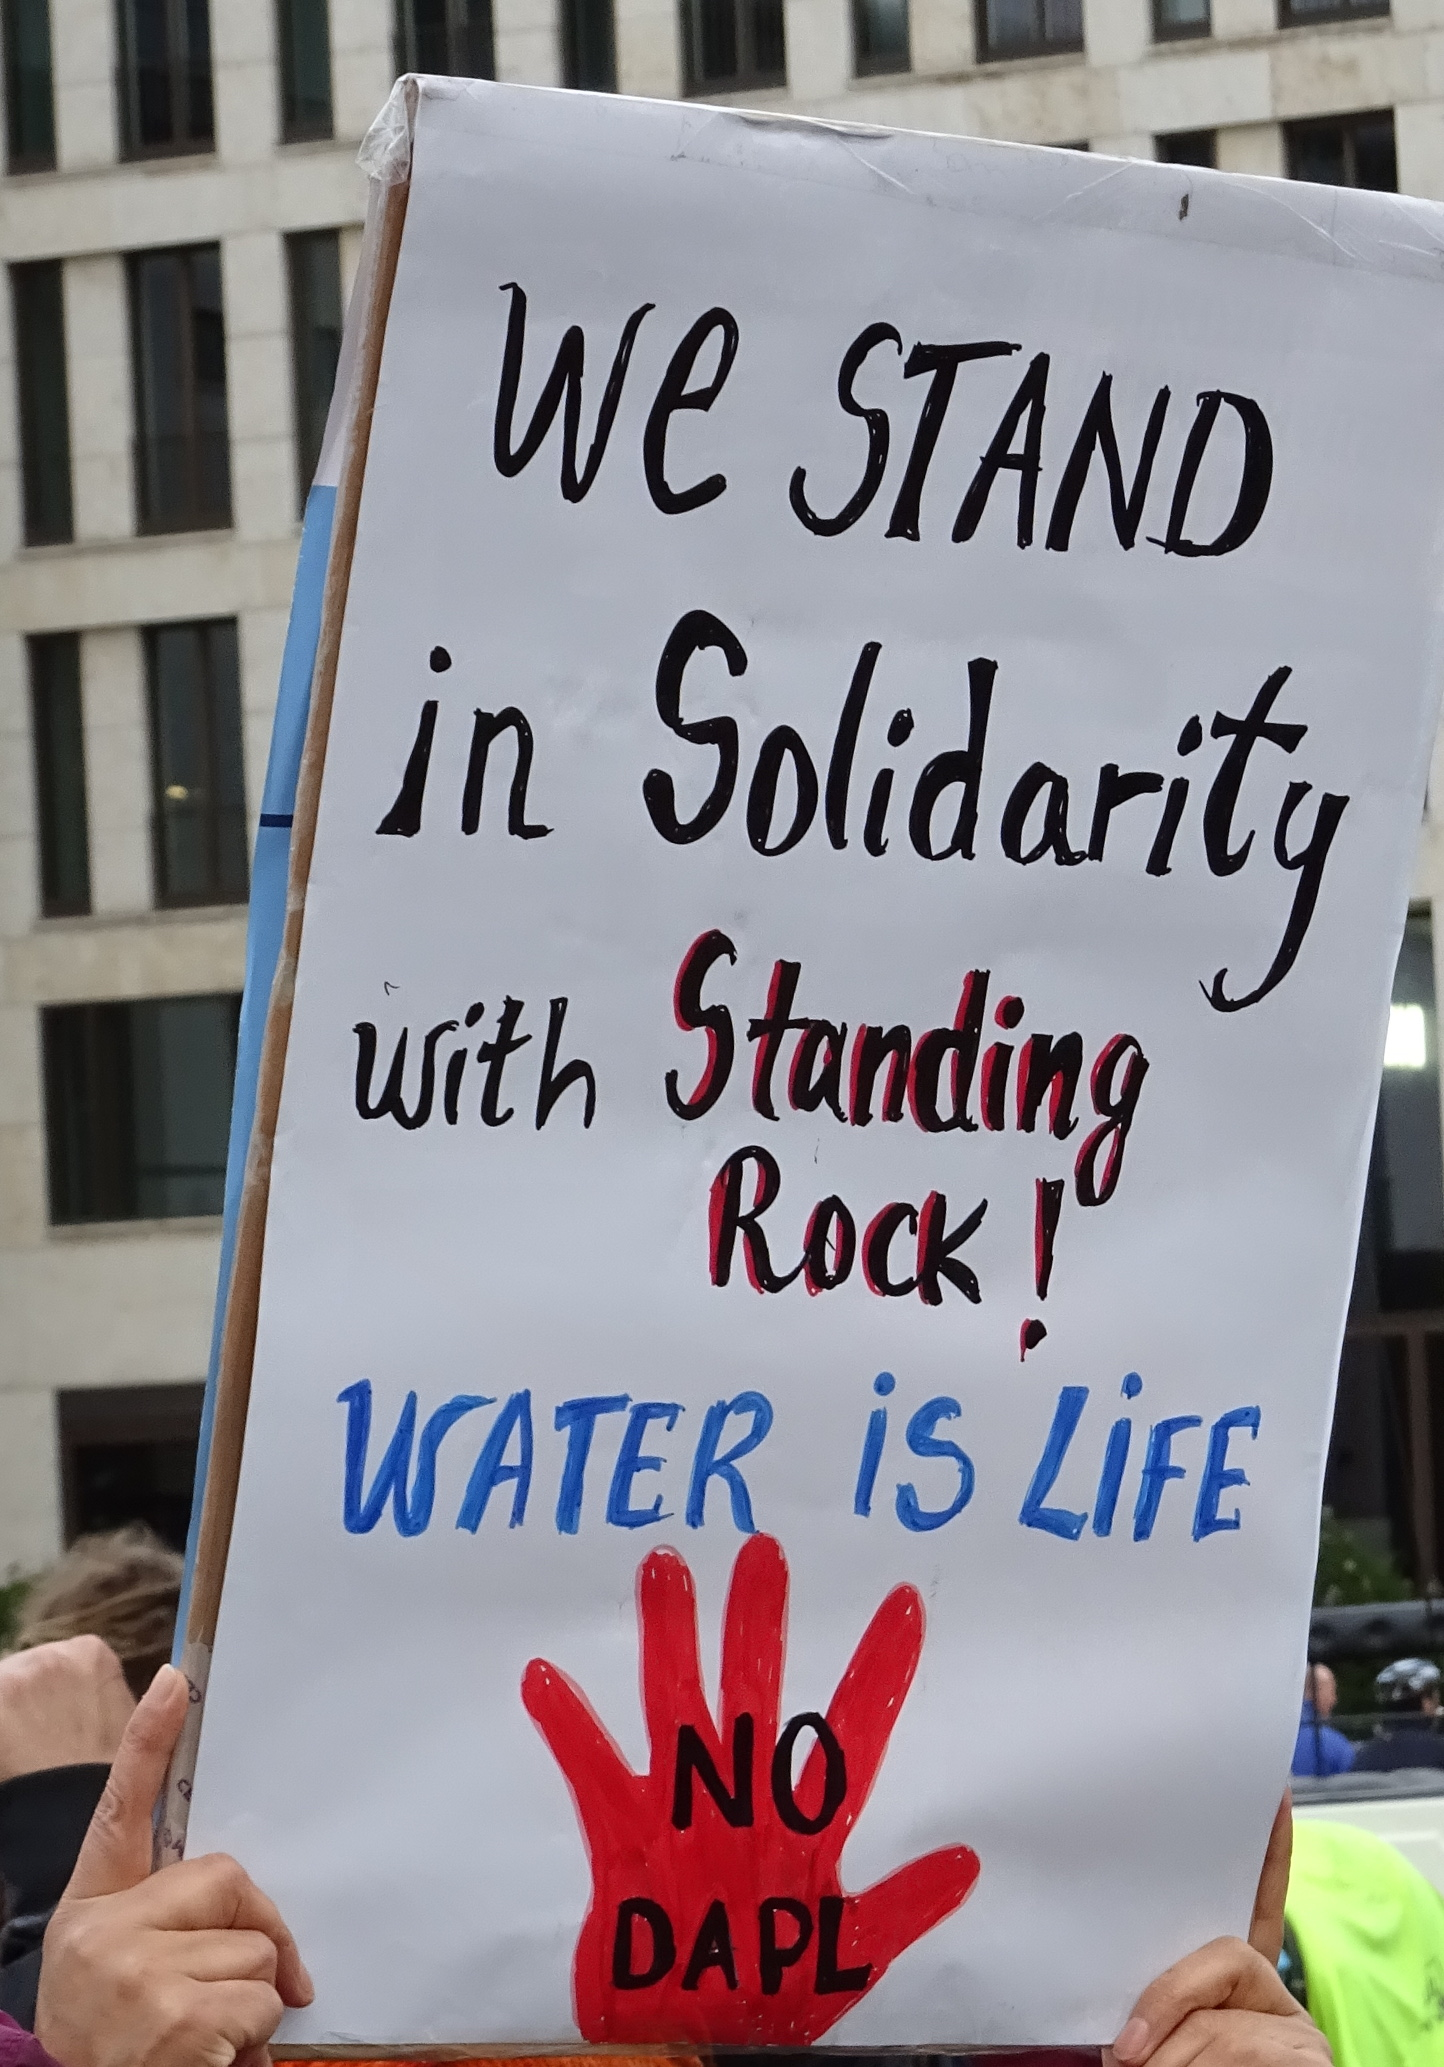 We stand with Standing Rock